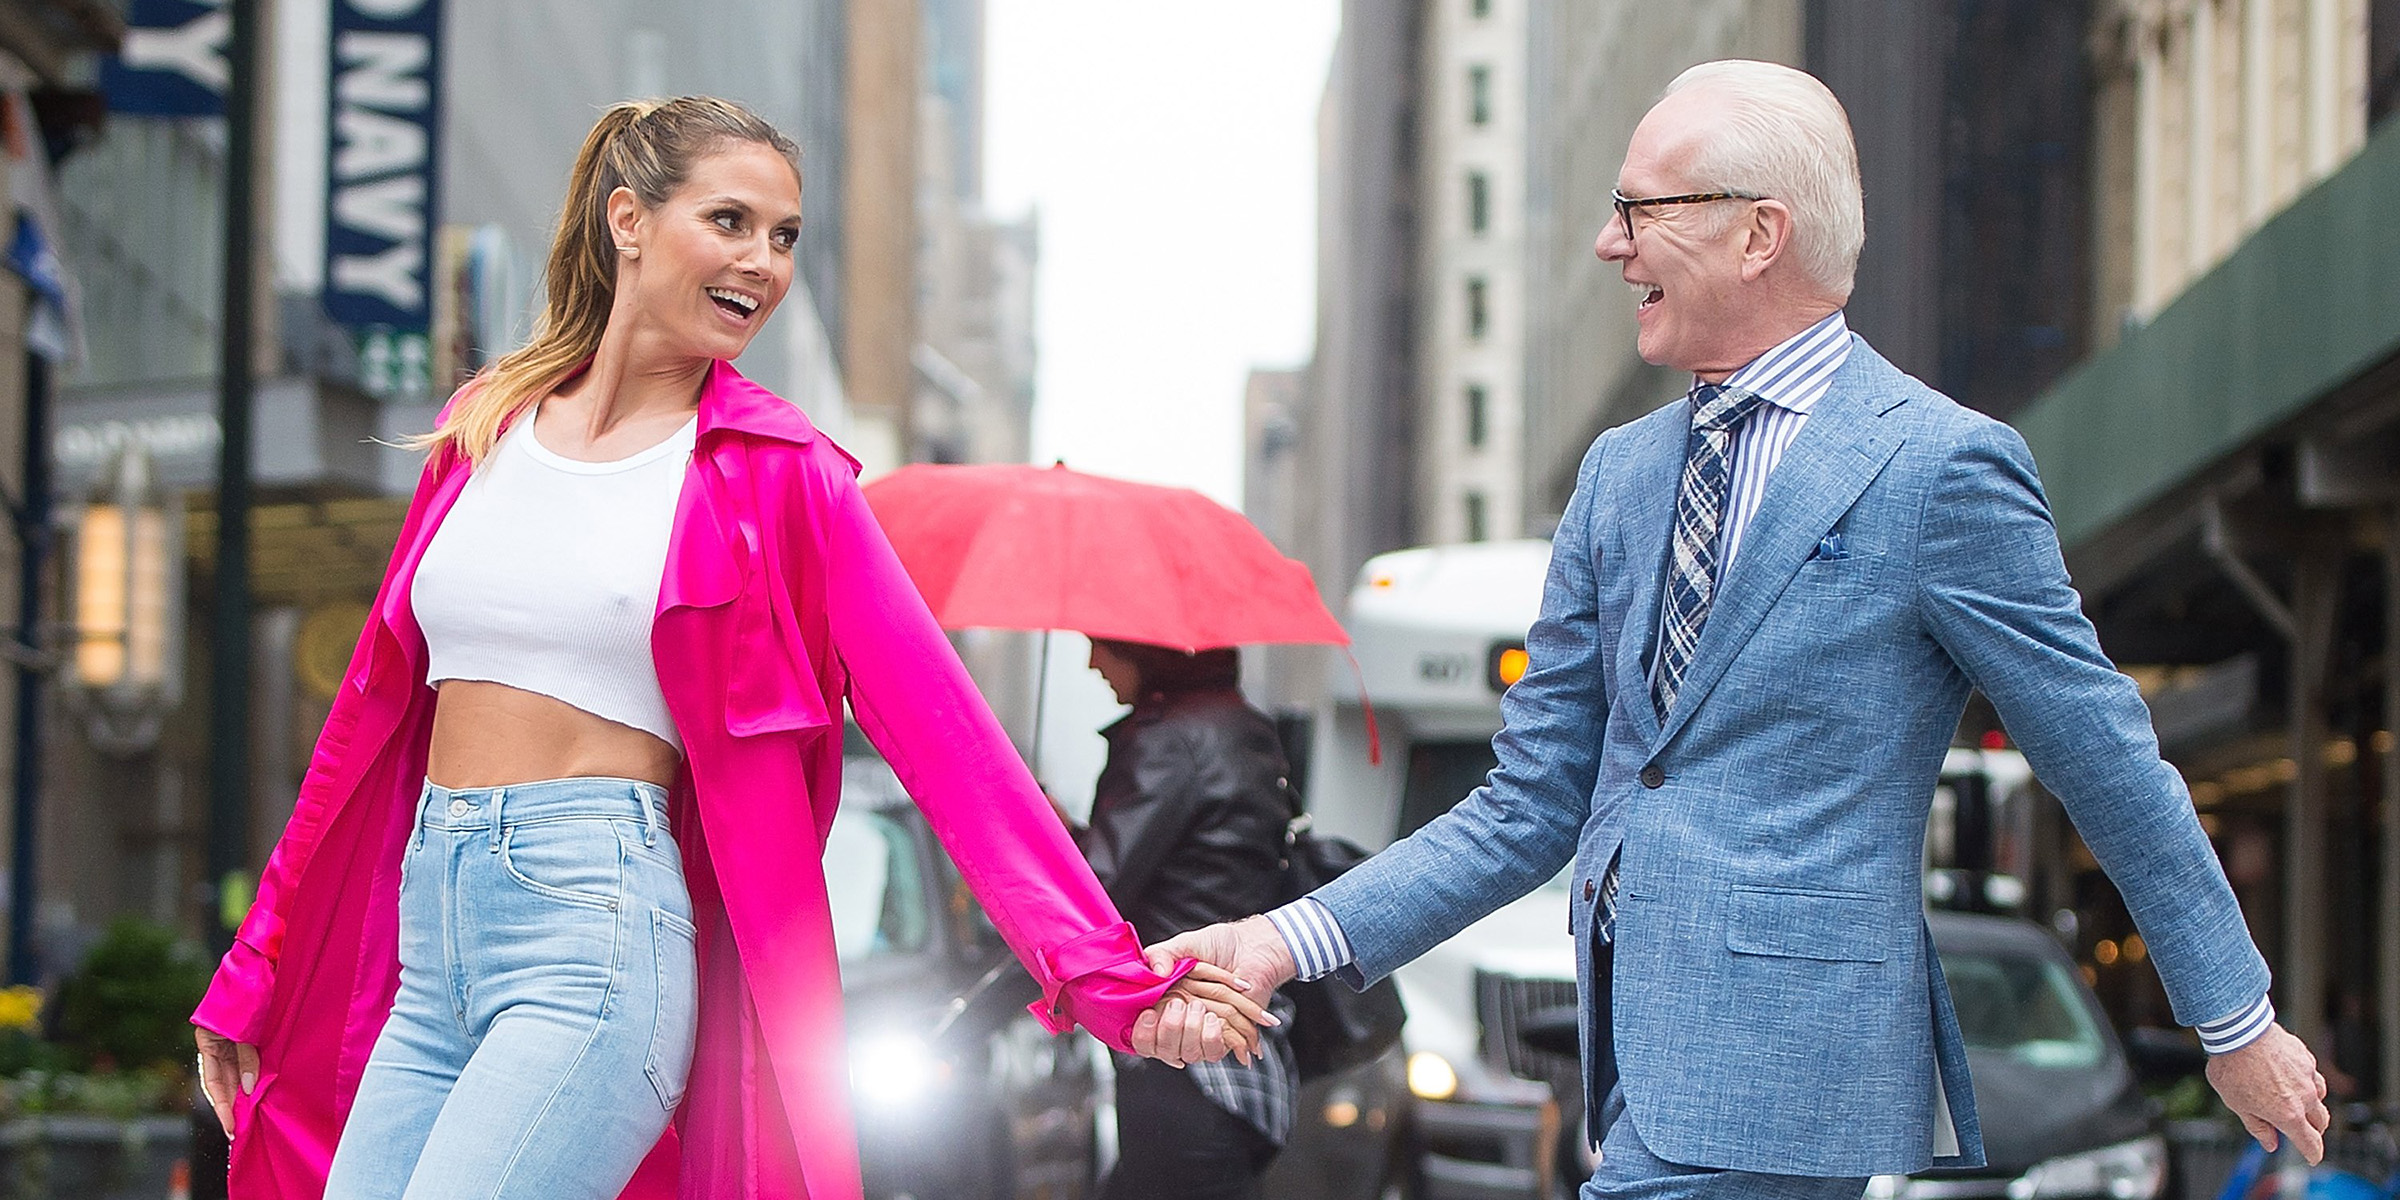 What To Know About Tim Gunn Heidi Klum S New Show Making The Cut